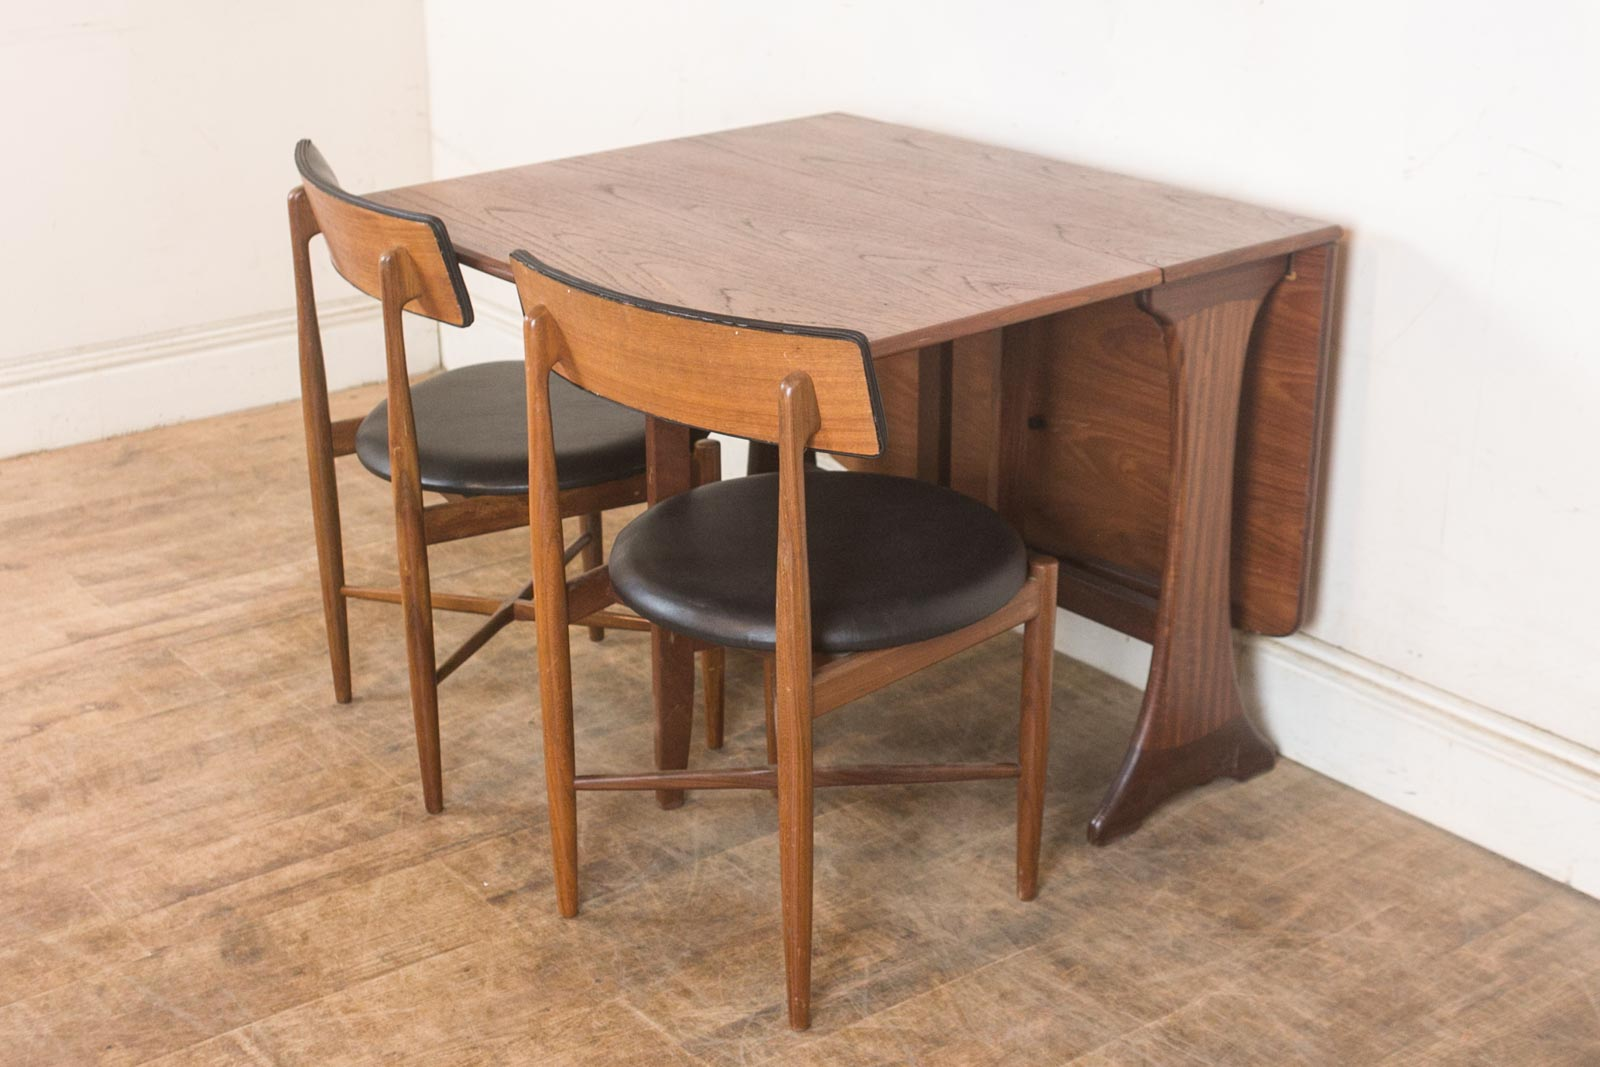 Vintage Retro G Plan Teak Drop Leaf Dining Table and 2  : hV040620 6 from www.ebay.co.uk size 1600 x 1067 jpeg 179kB